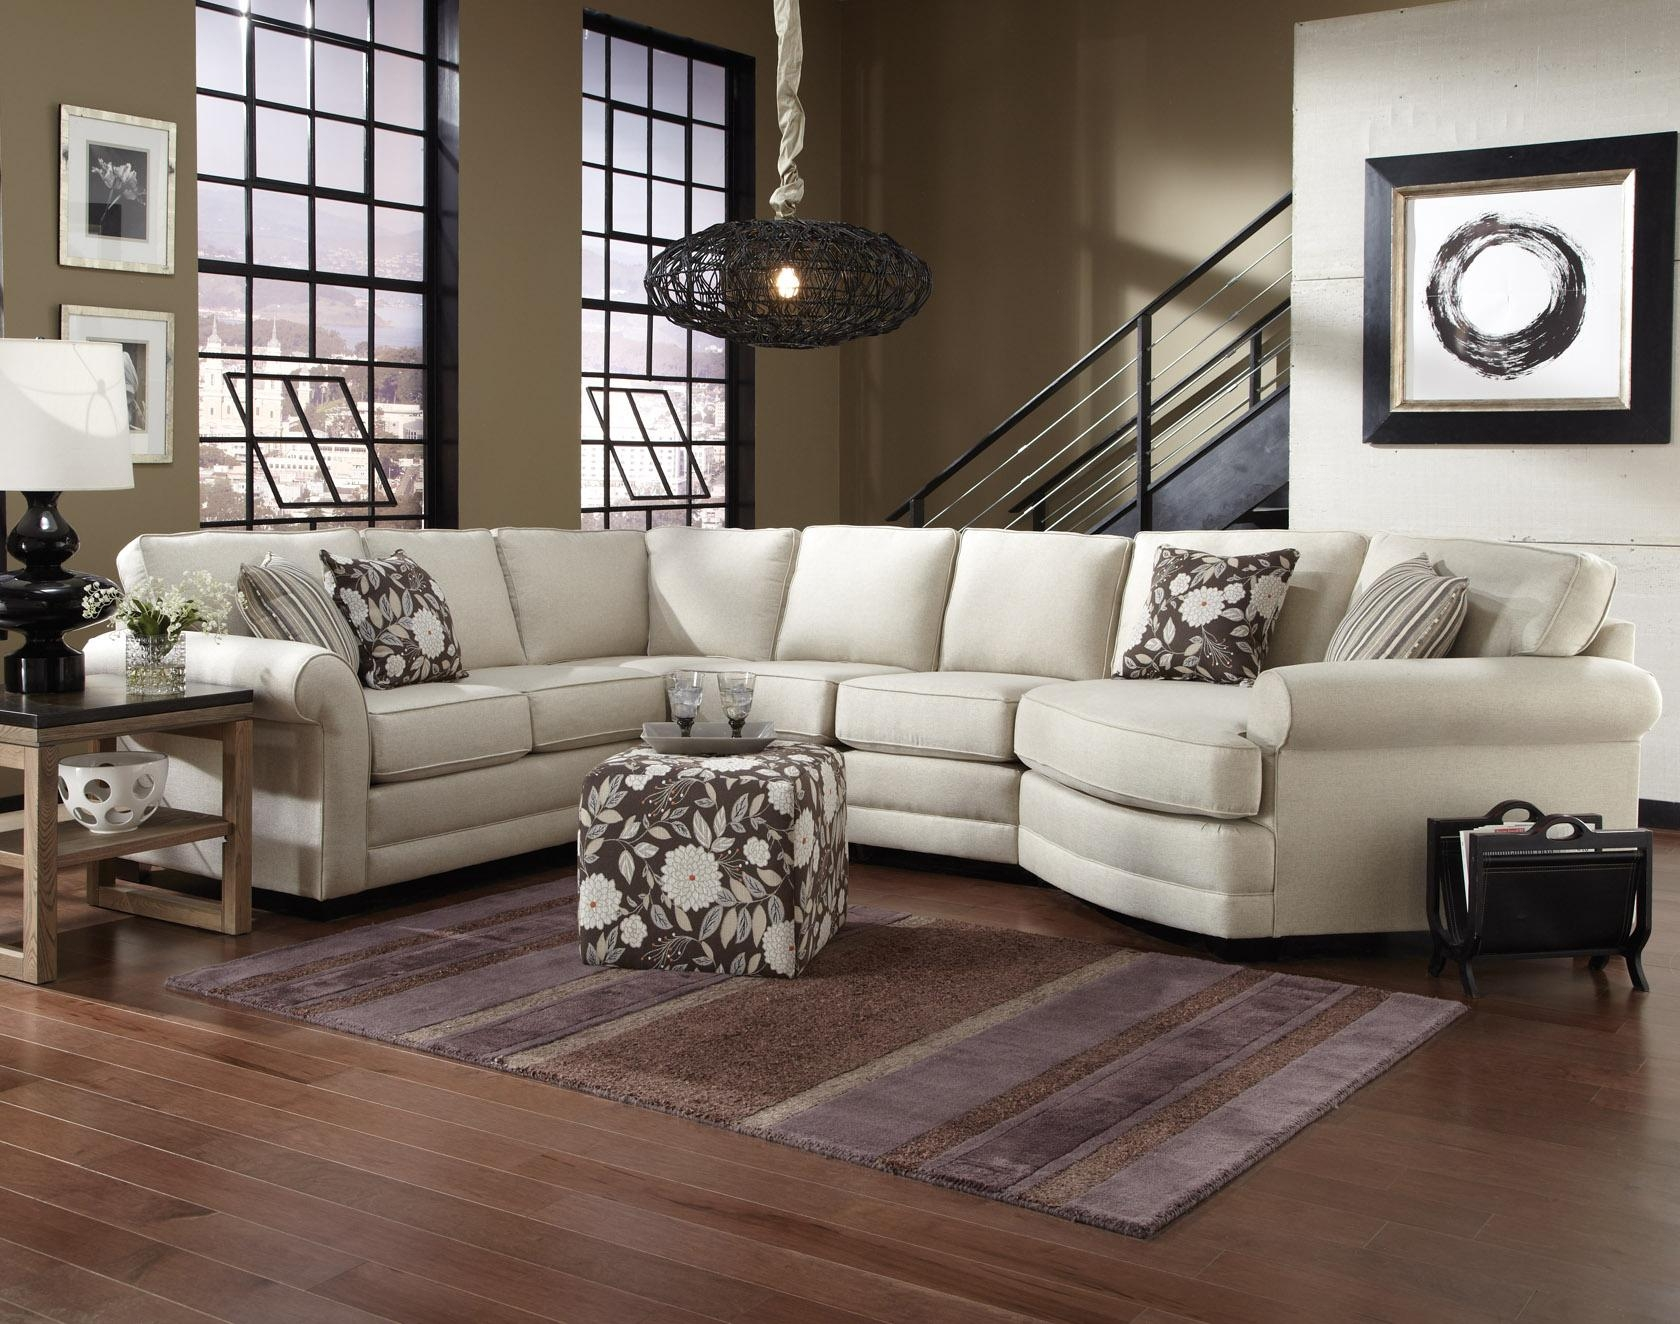 Rowe My Style I Ii Transitional Sectional Sofa With Turned Legs Within 7 Seat Sectional Sofa (#12 of 12)